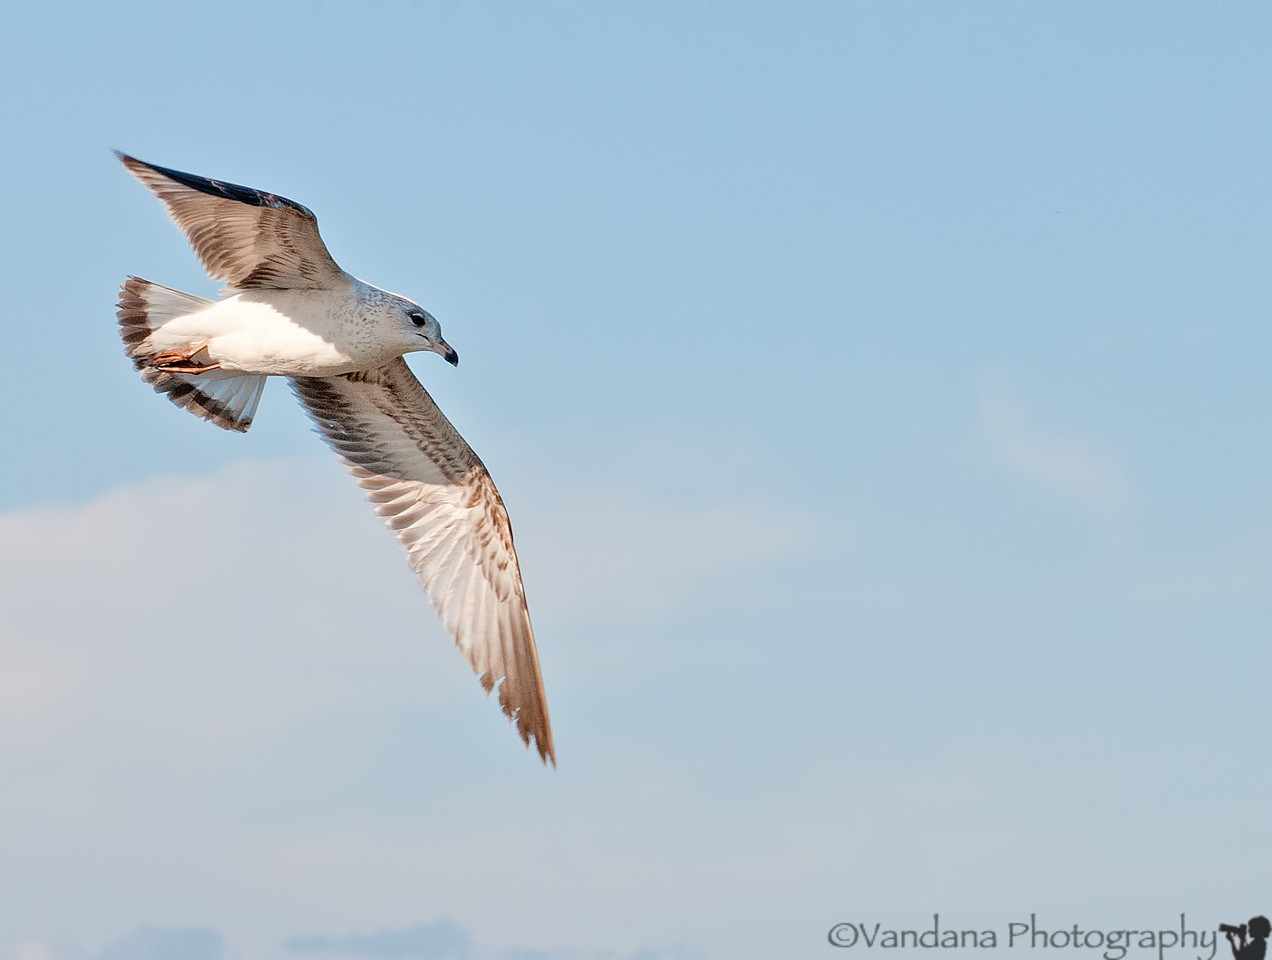 March 19, 2012 - a seagull in flight, taken at Ebenezer Park, near Rock Hill, SC